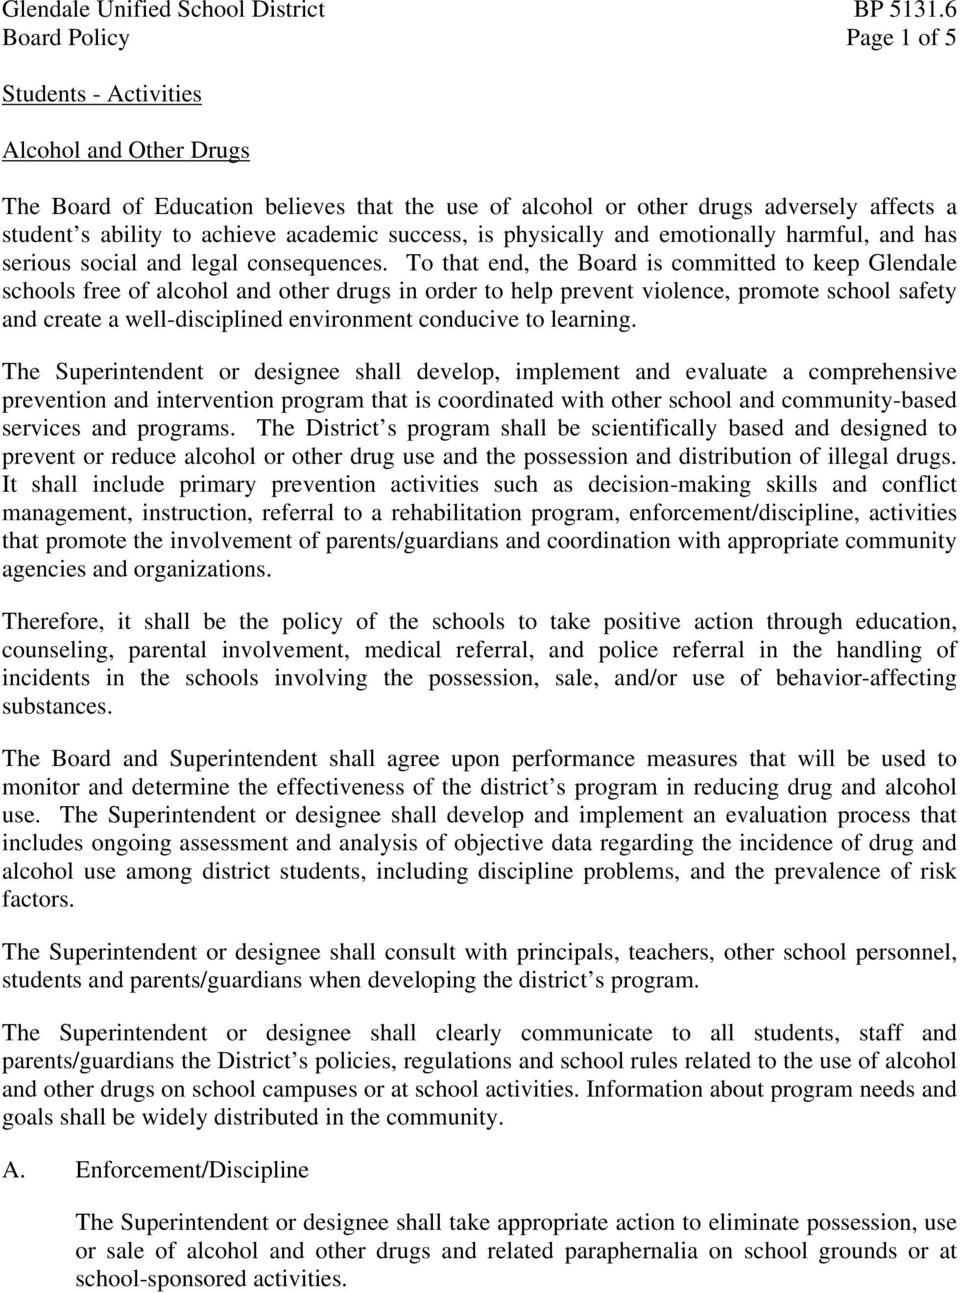 To that end, the Board is committed to keep Glendale schools free of alcohol and other drugs in order to help prevent violence, promote school safety and create a well-disciplined environment